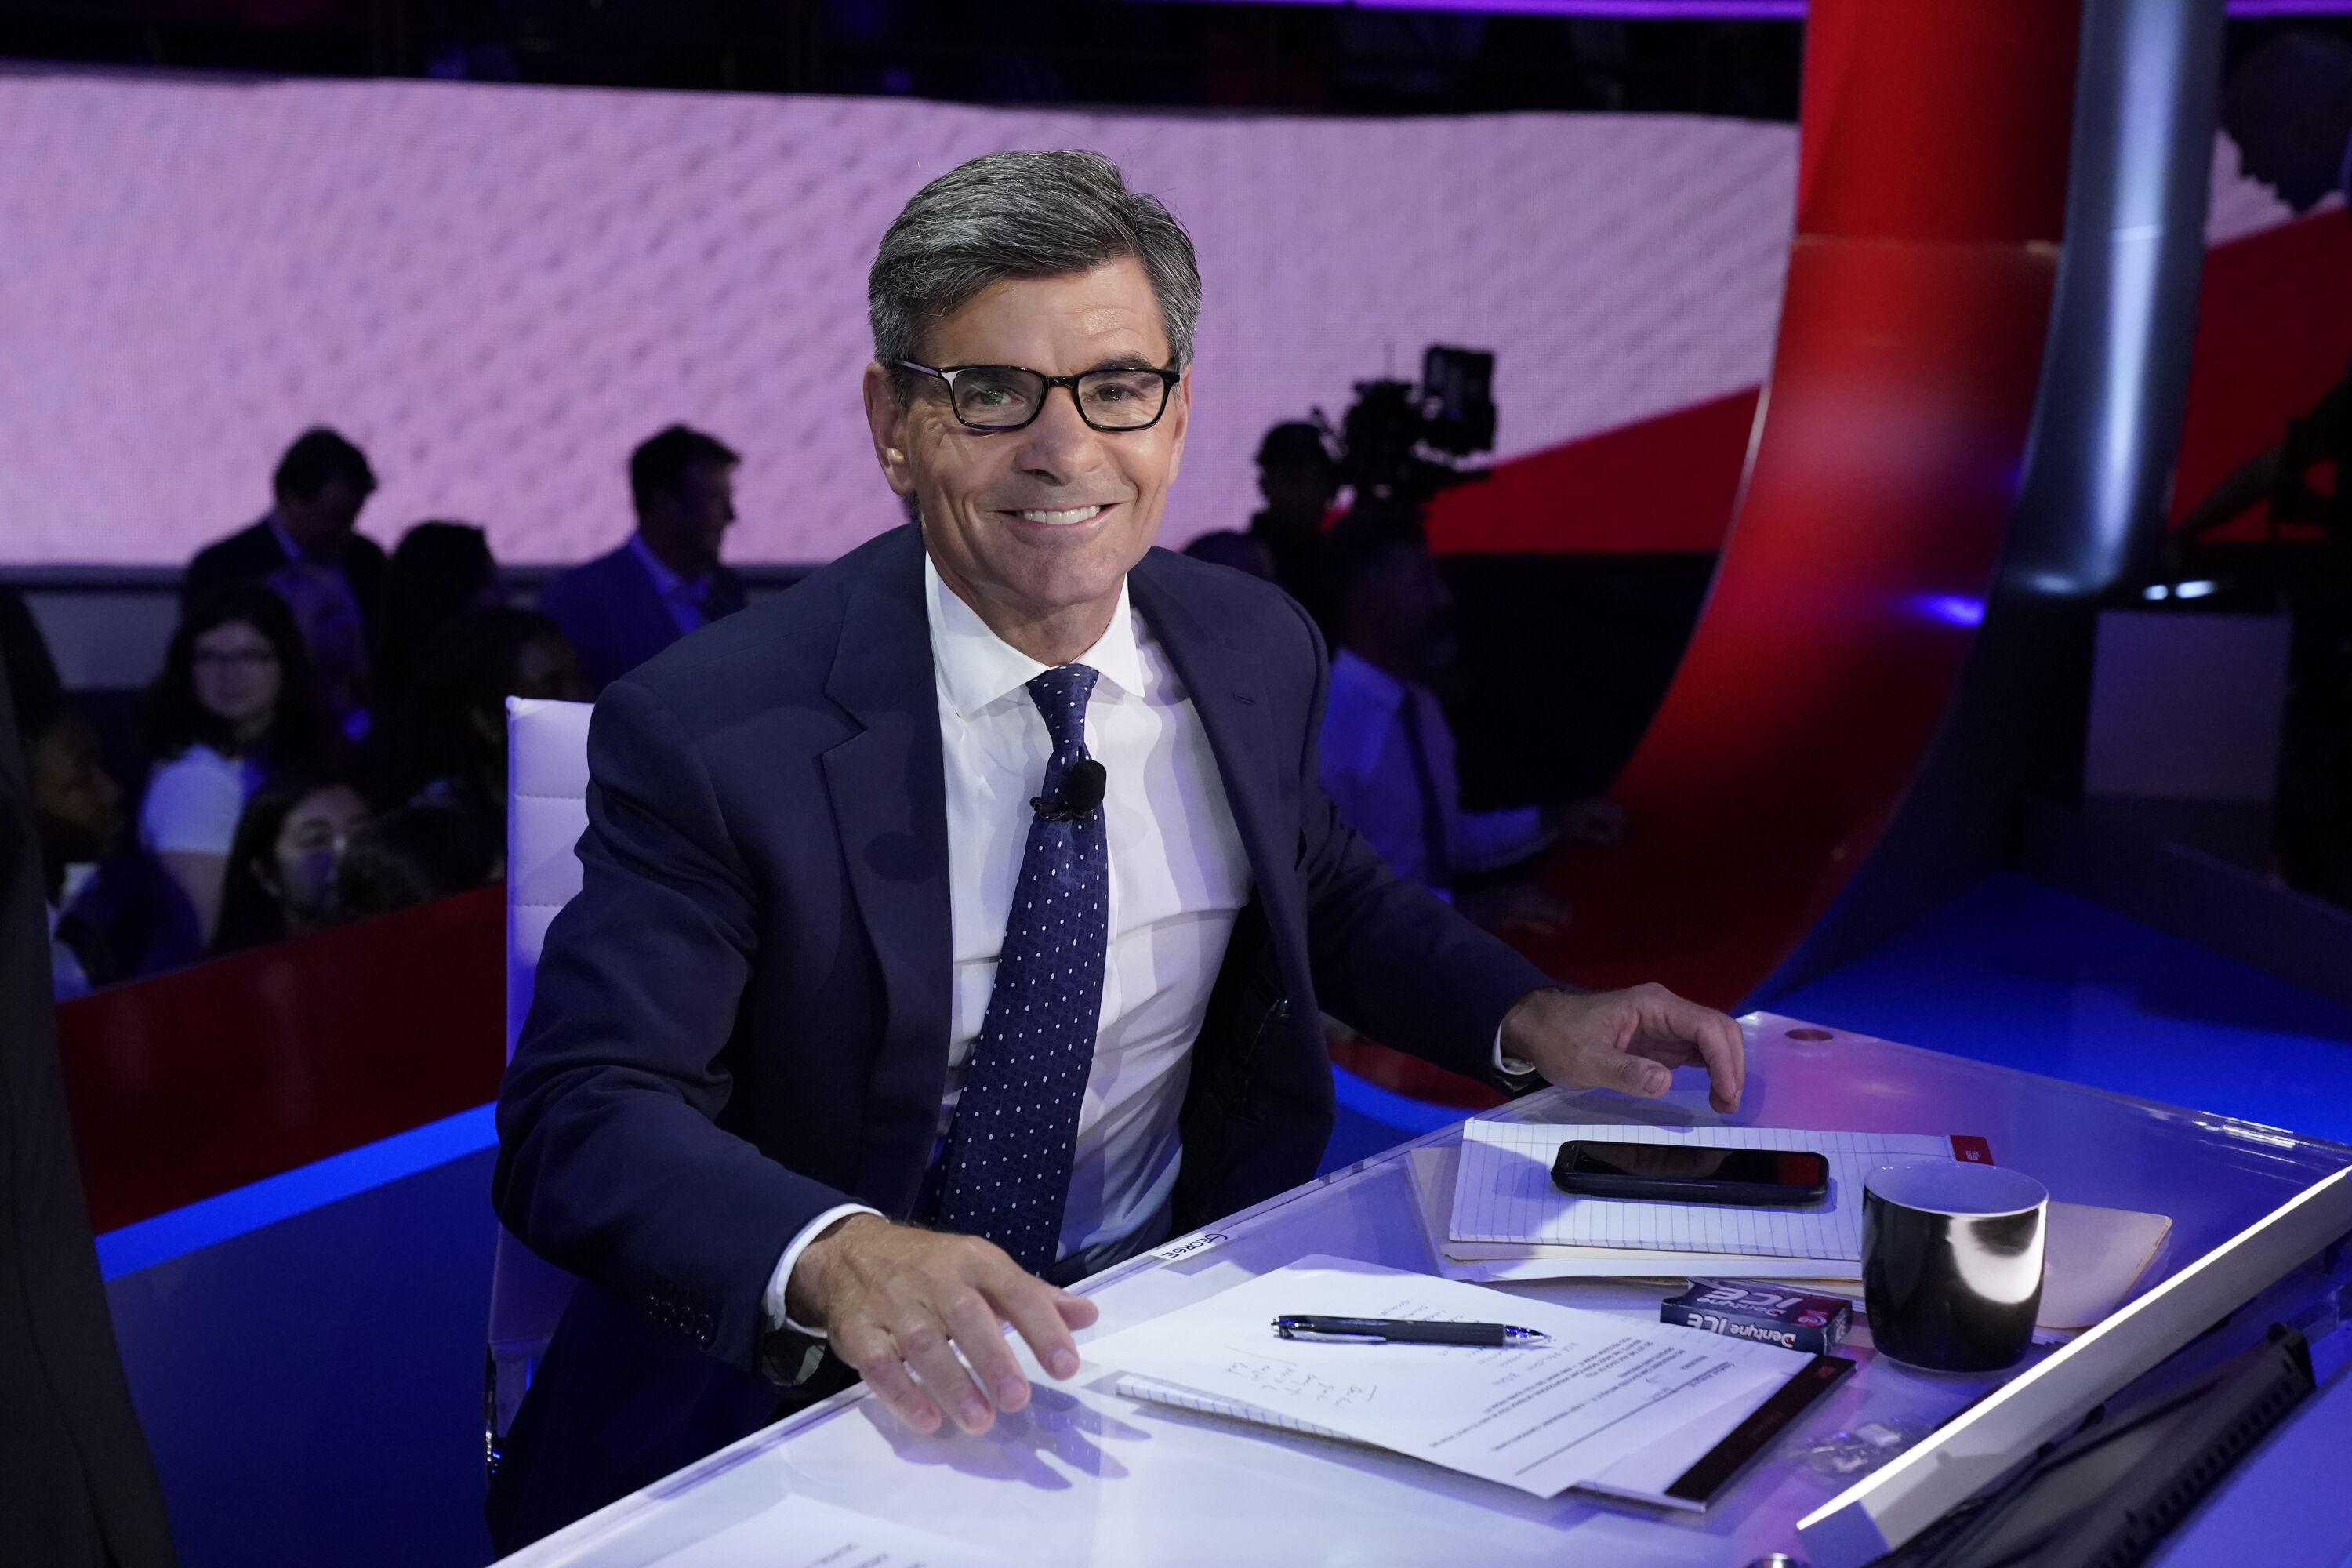 George Stephanopoulos moderate the Democratic debate from Texas Southern University's Health & PE Center in Houston, TX on Thursday, September 12 | Photo: Getty Images